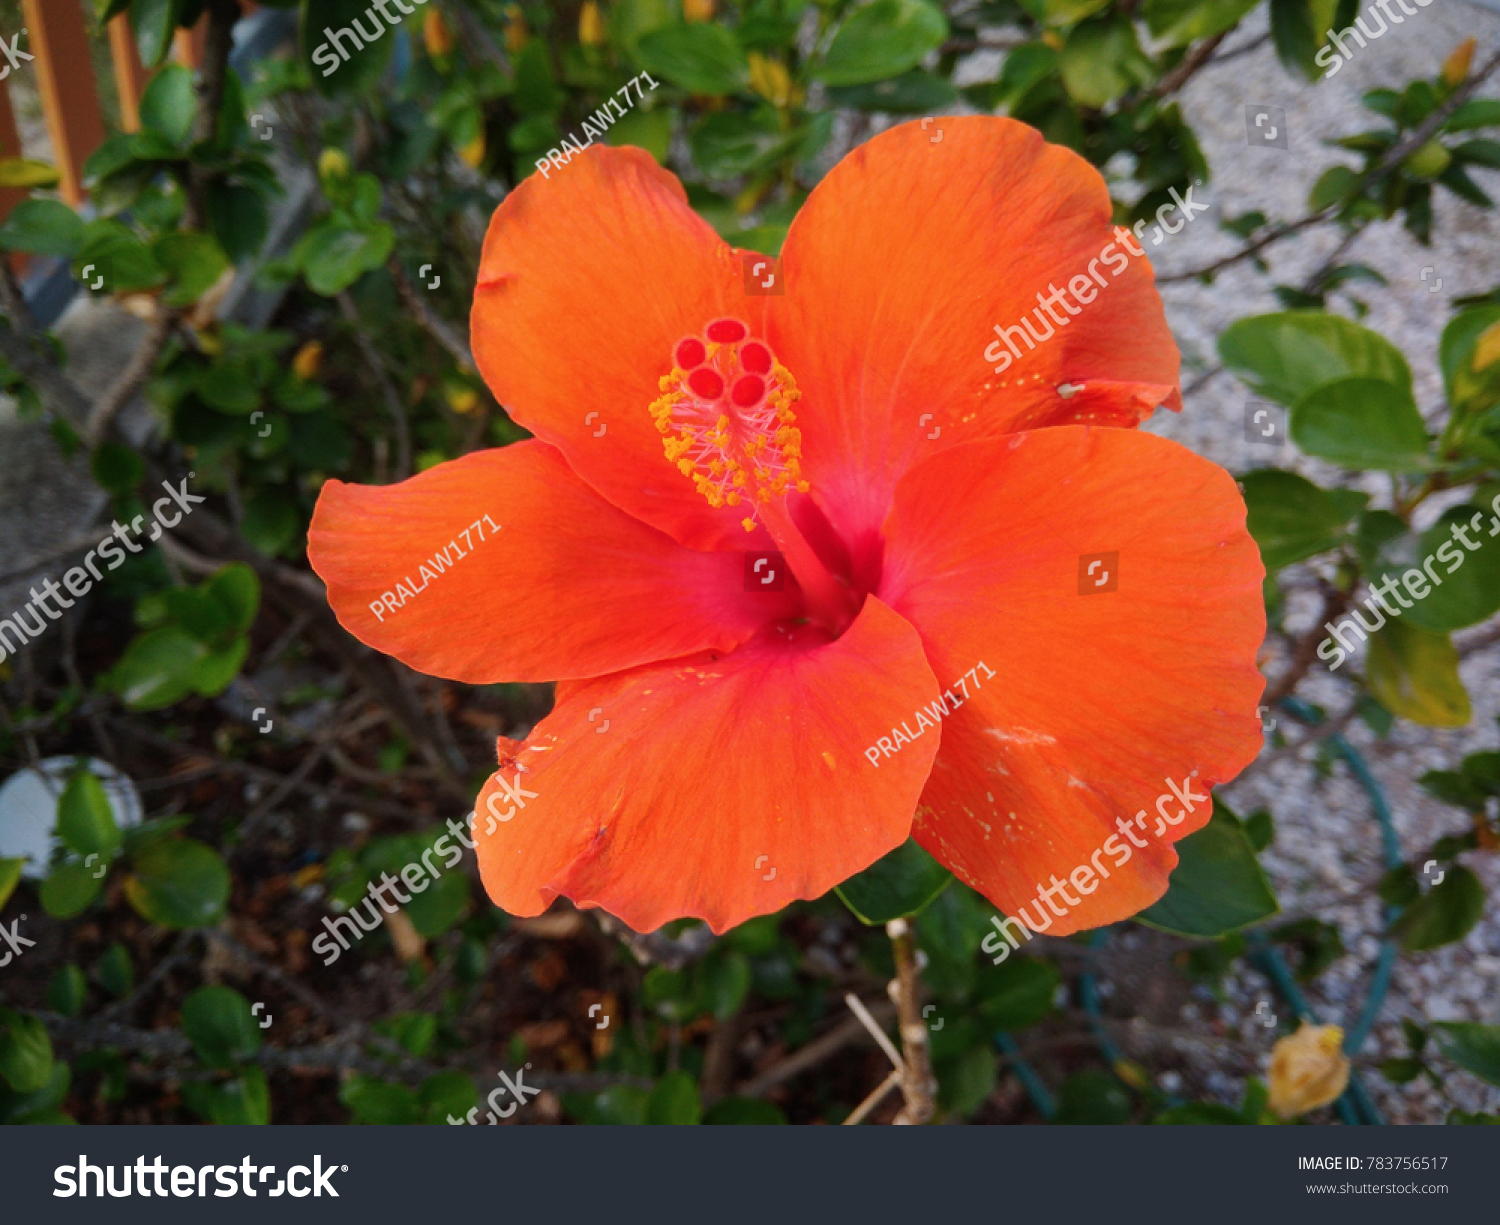 This flower name chaba flower thai stock photo edit now 783756517 this flower name is chaba flower in thai language and shoe flower or izmirmasajfo